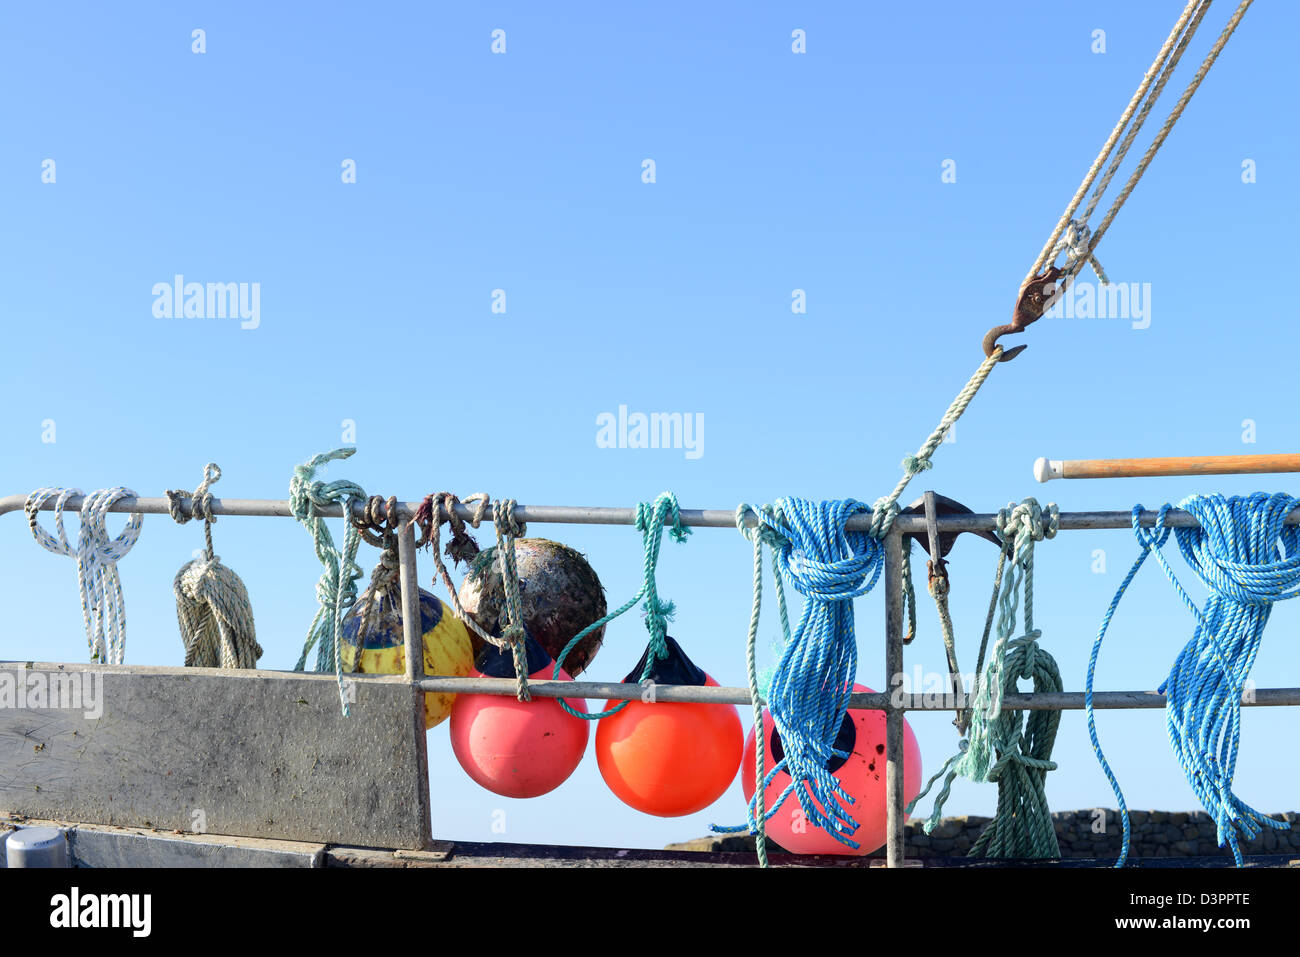 Fishing marker bouys on the hand rails of a fishing trawler in Guernsey - Stock Image